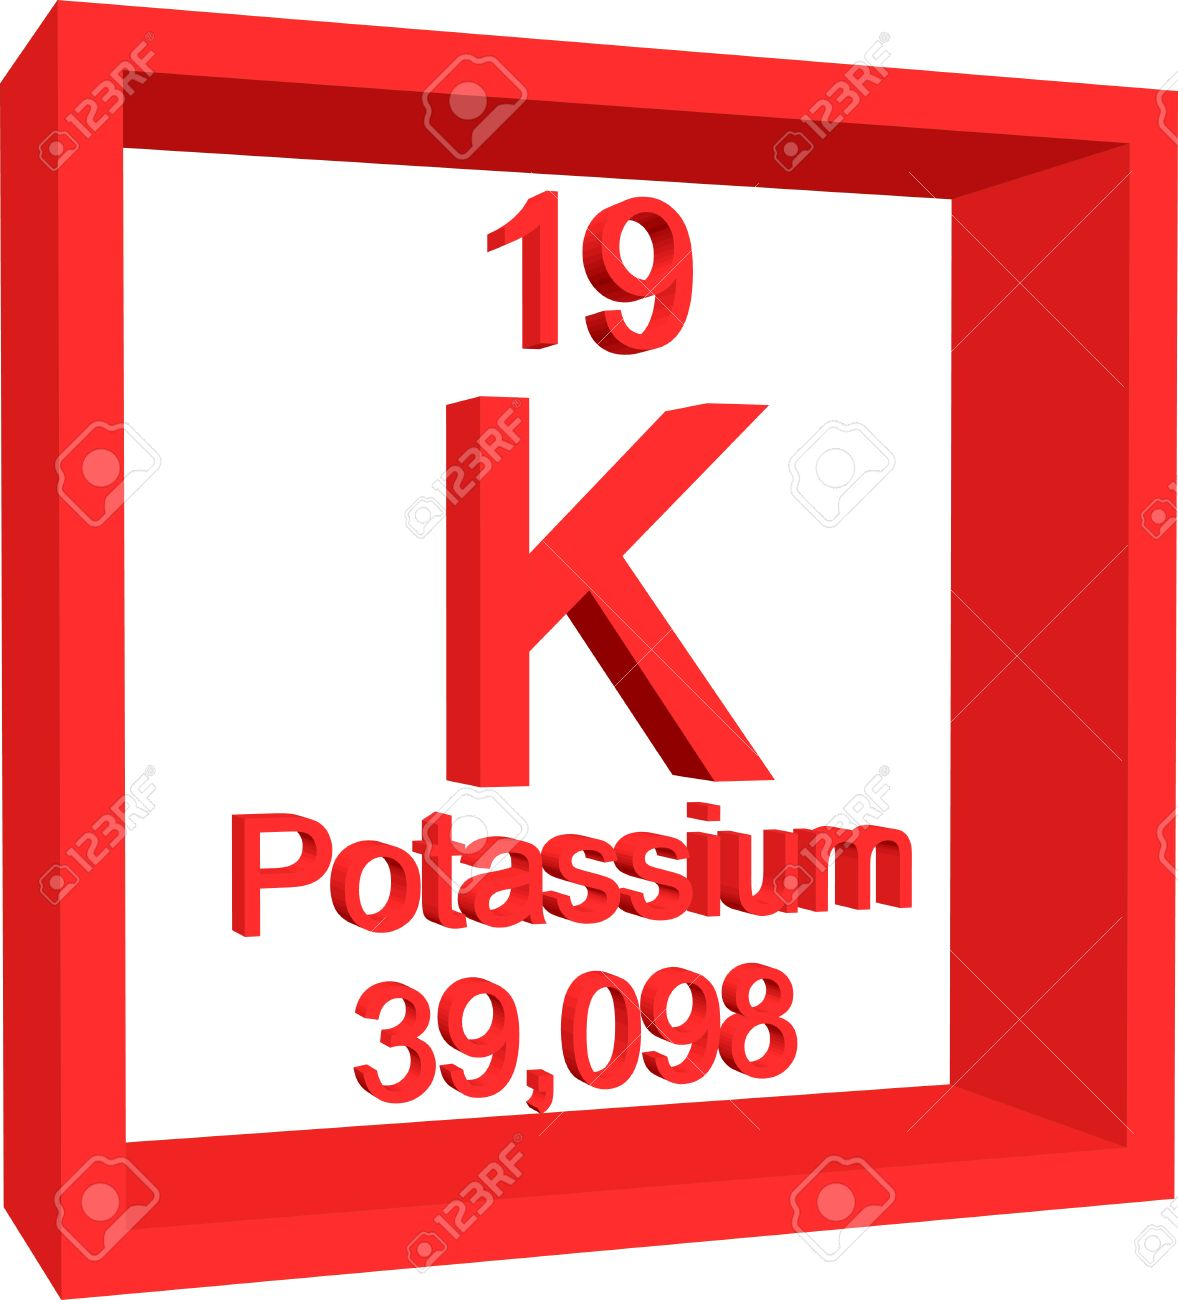 Rarest element on periodic table gallery periodic table images rarest element on periodic table gallery periodic table images rarest element on periodic table images periodic gamestrikefo Image collections